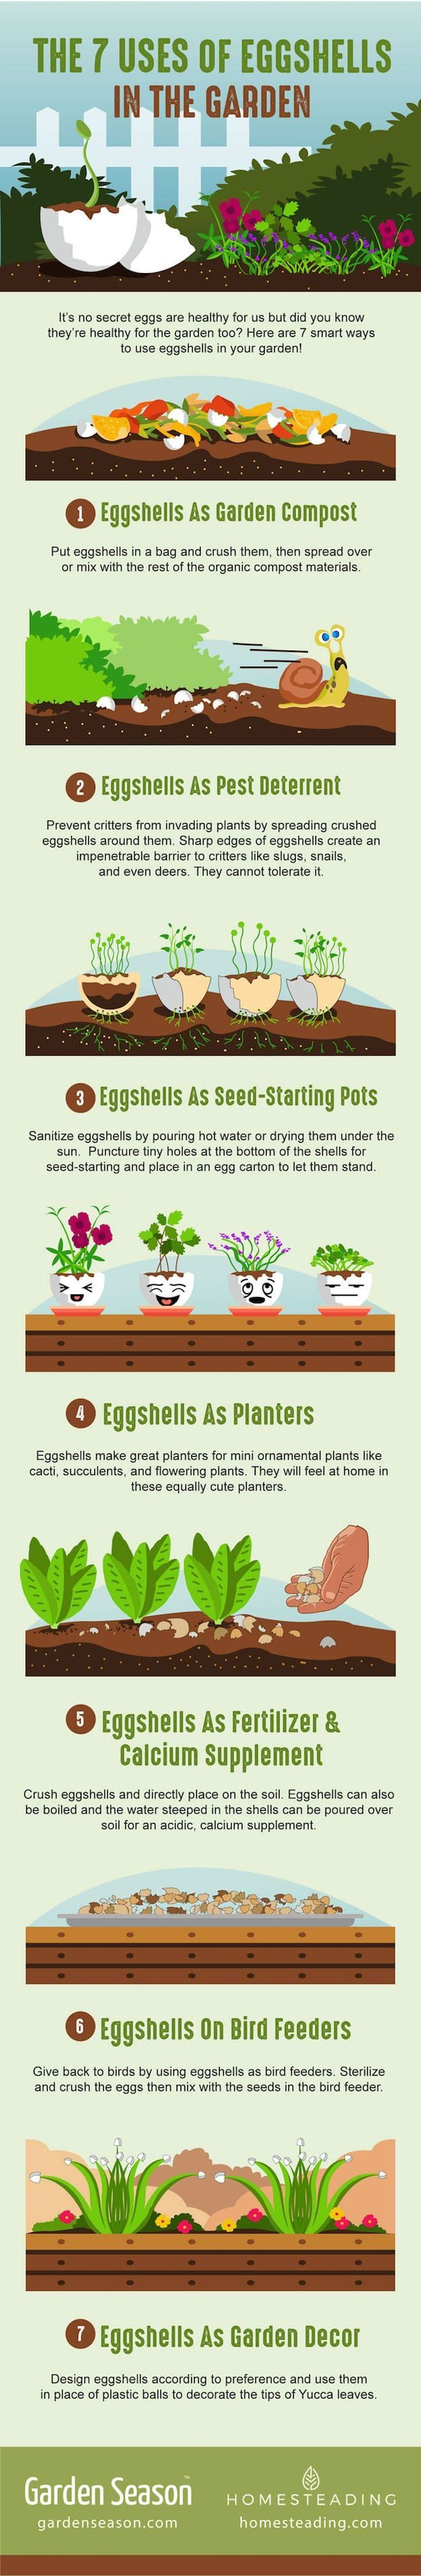 How To Use Eggshells In The Garden | Cost-Cutting Gardening Hacks